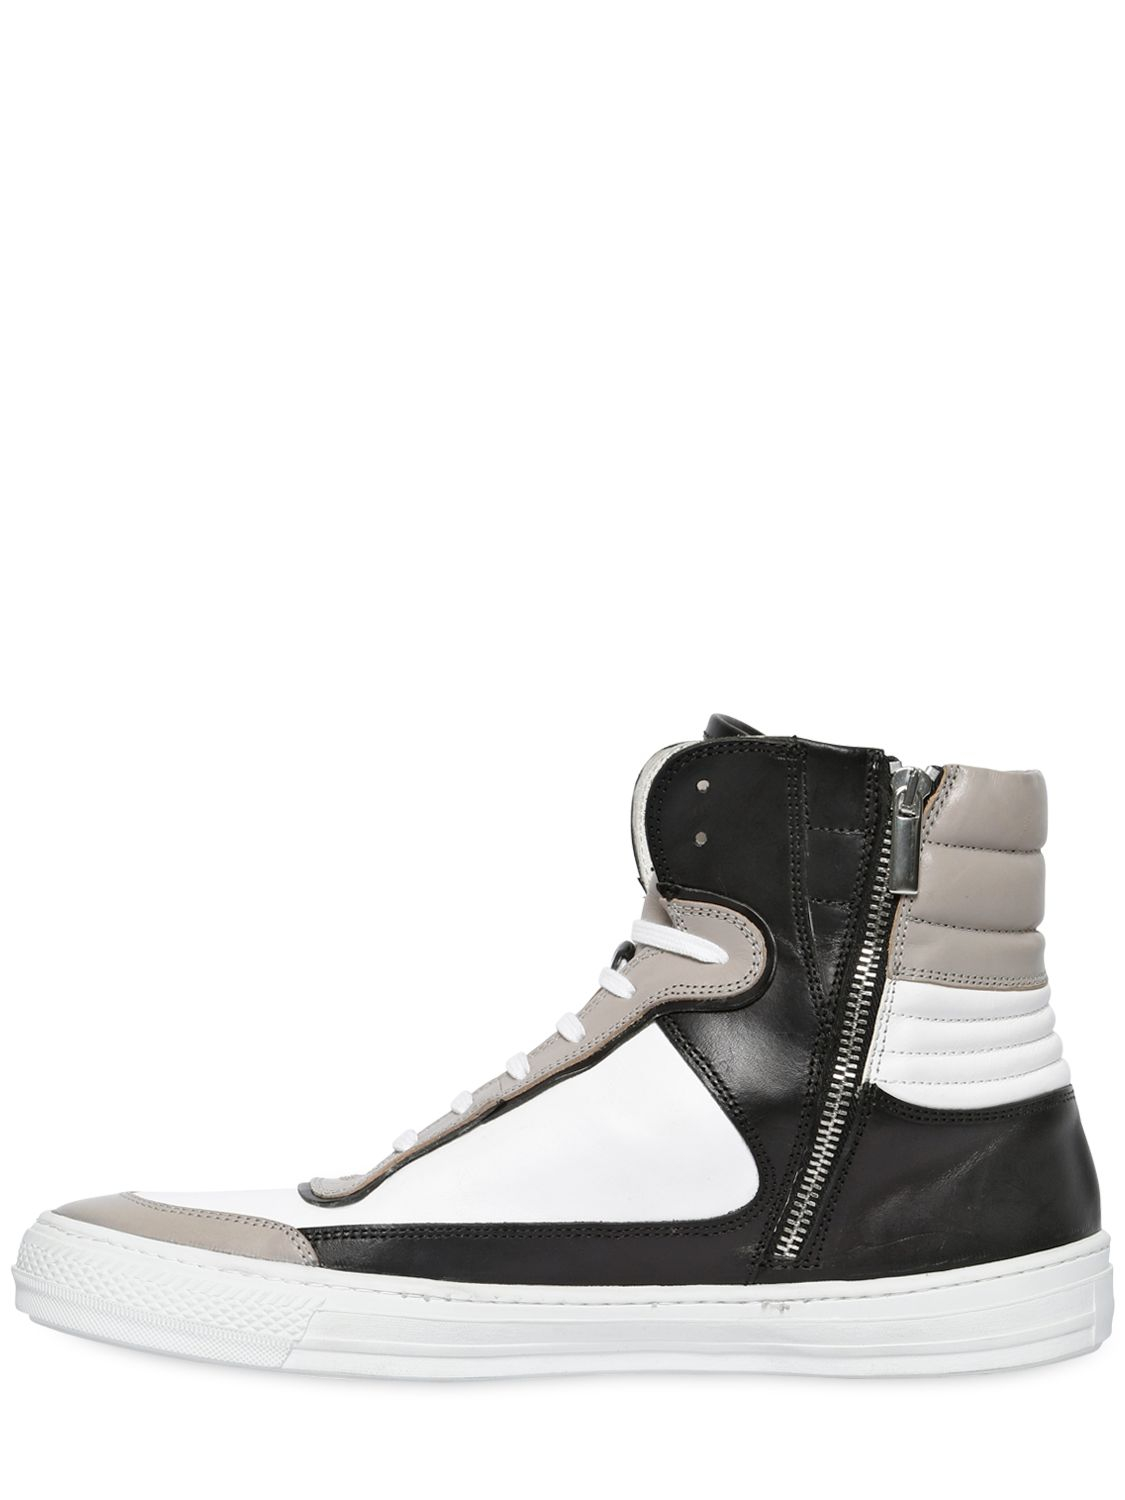 Diesel Or Noir High-tops Et Baskets qPhwmlb51u